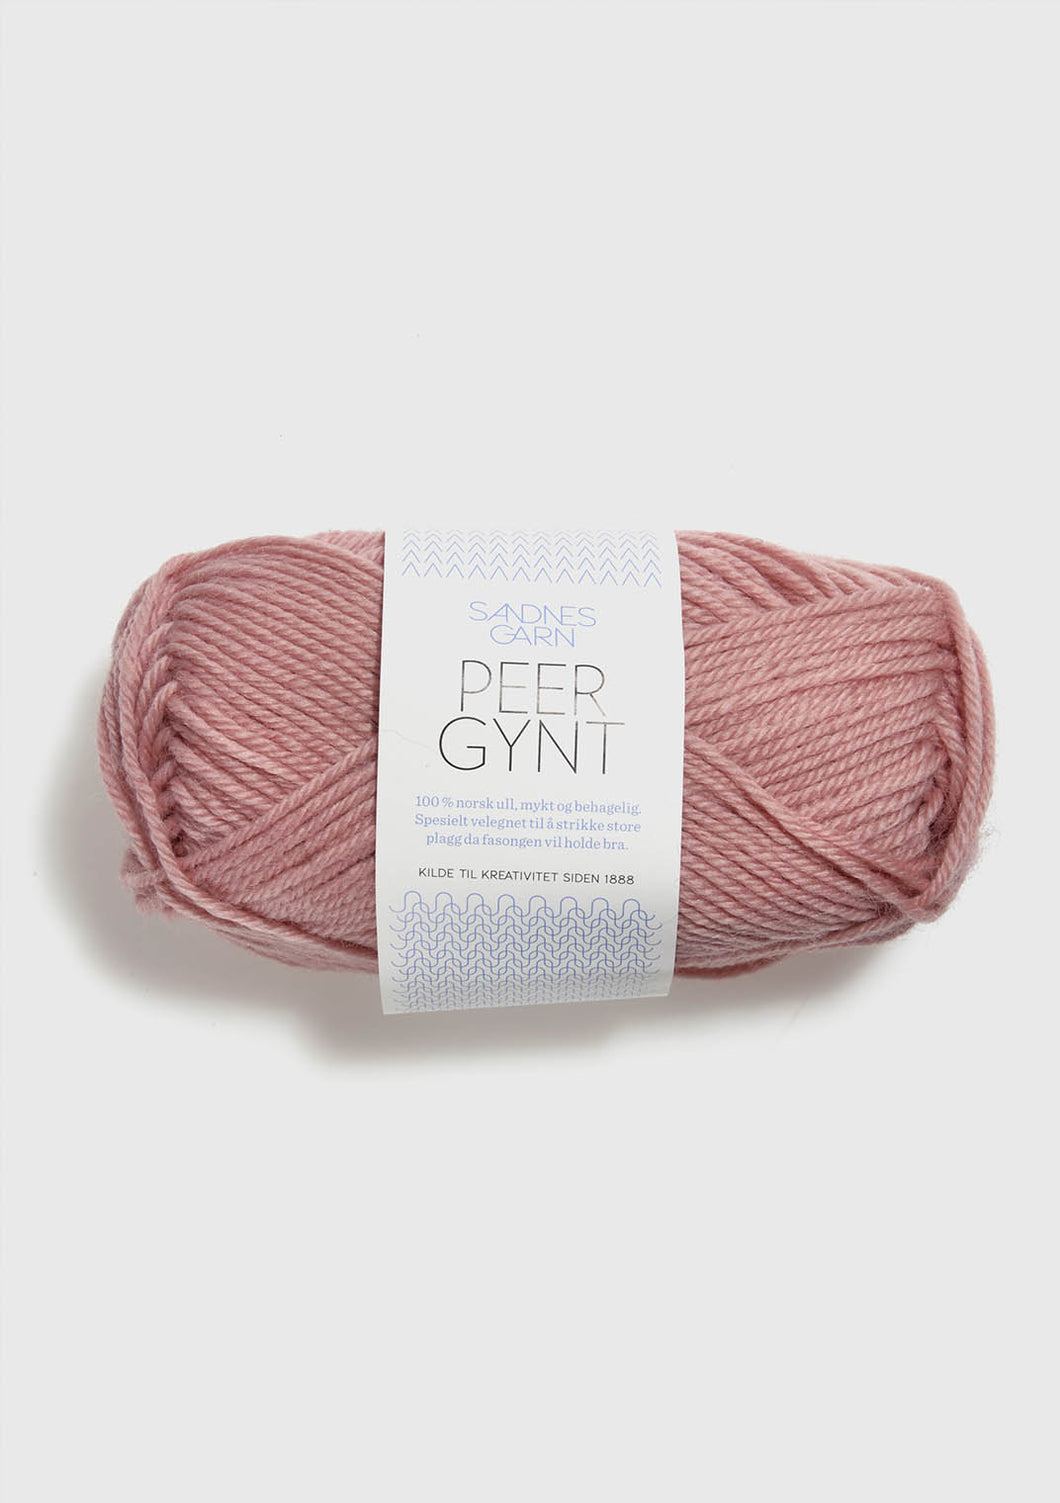 Sandnes Peer Gynt  - Old Pink 4023